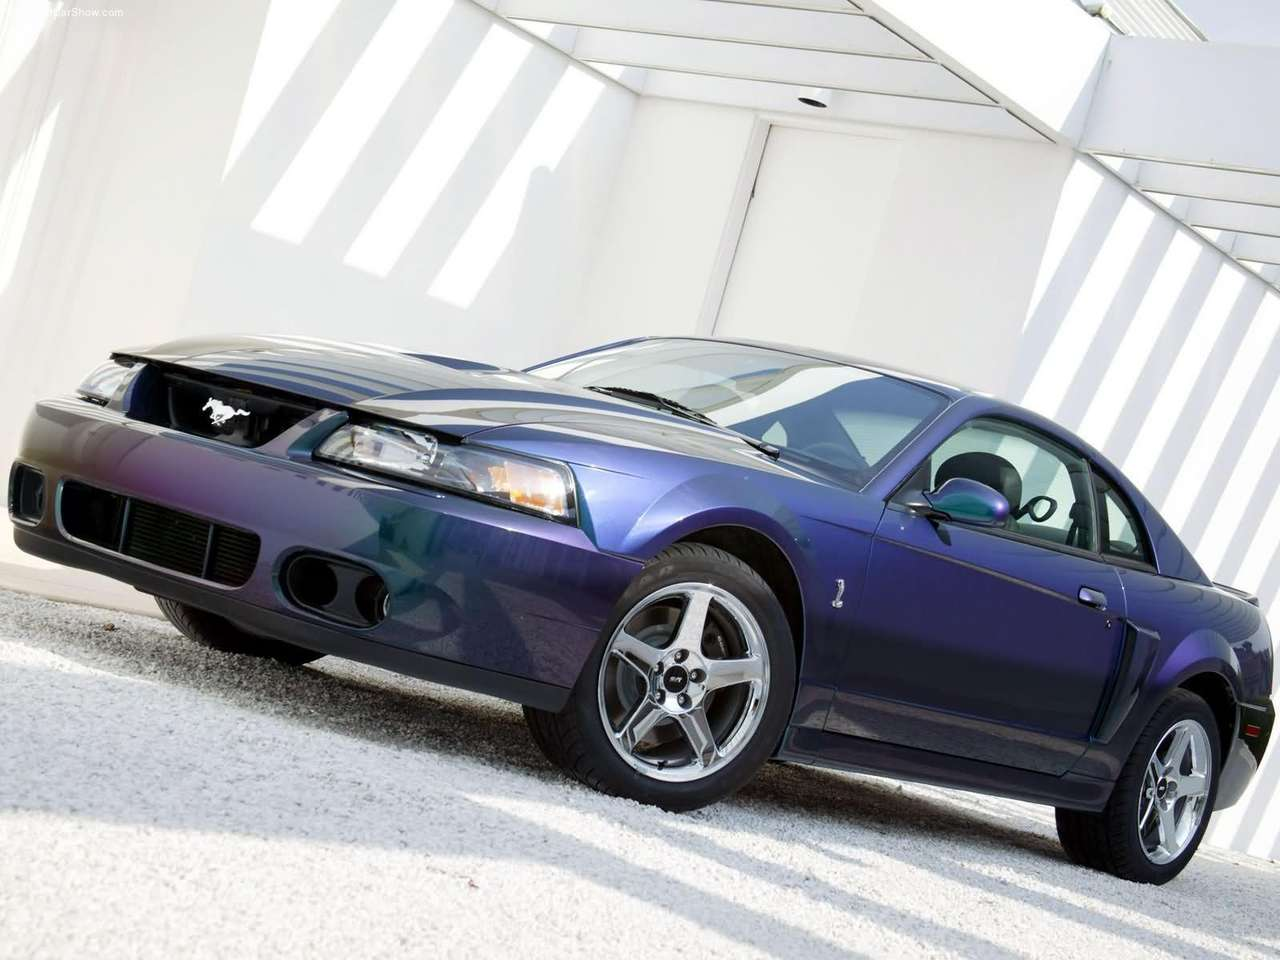 Ford   Populaire fran  ais dautomobiles  2004 Ford SVT Mustang